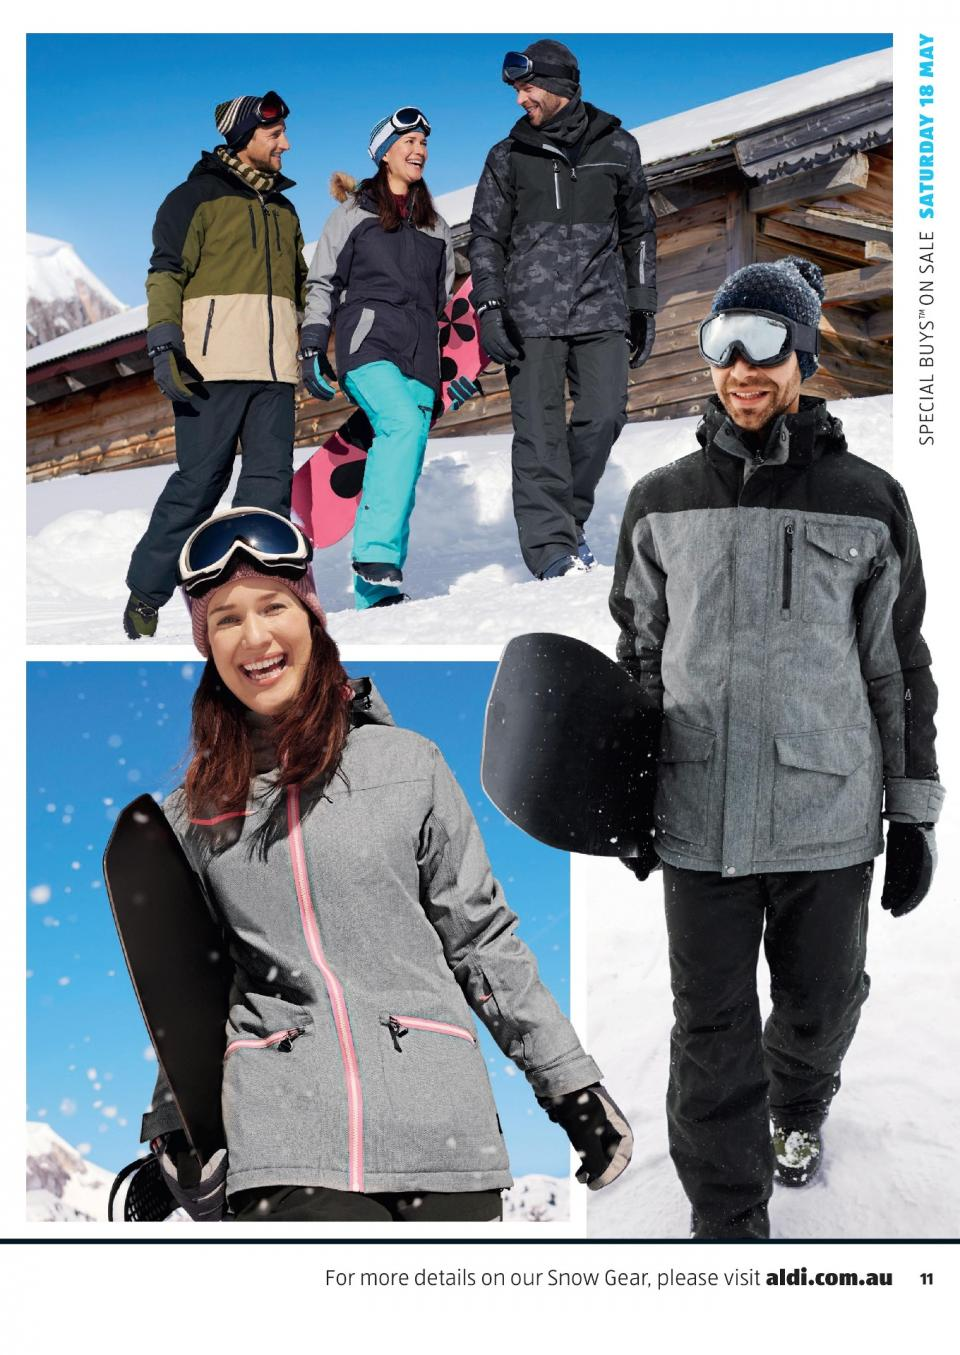 aldi catalogue snow gear 2019